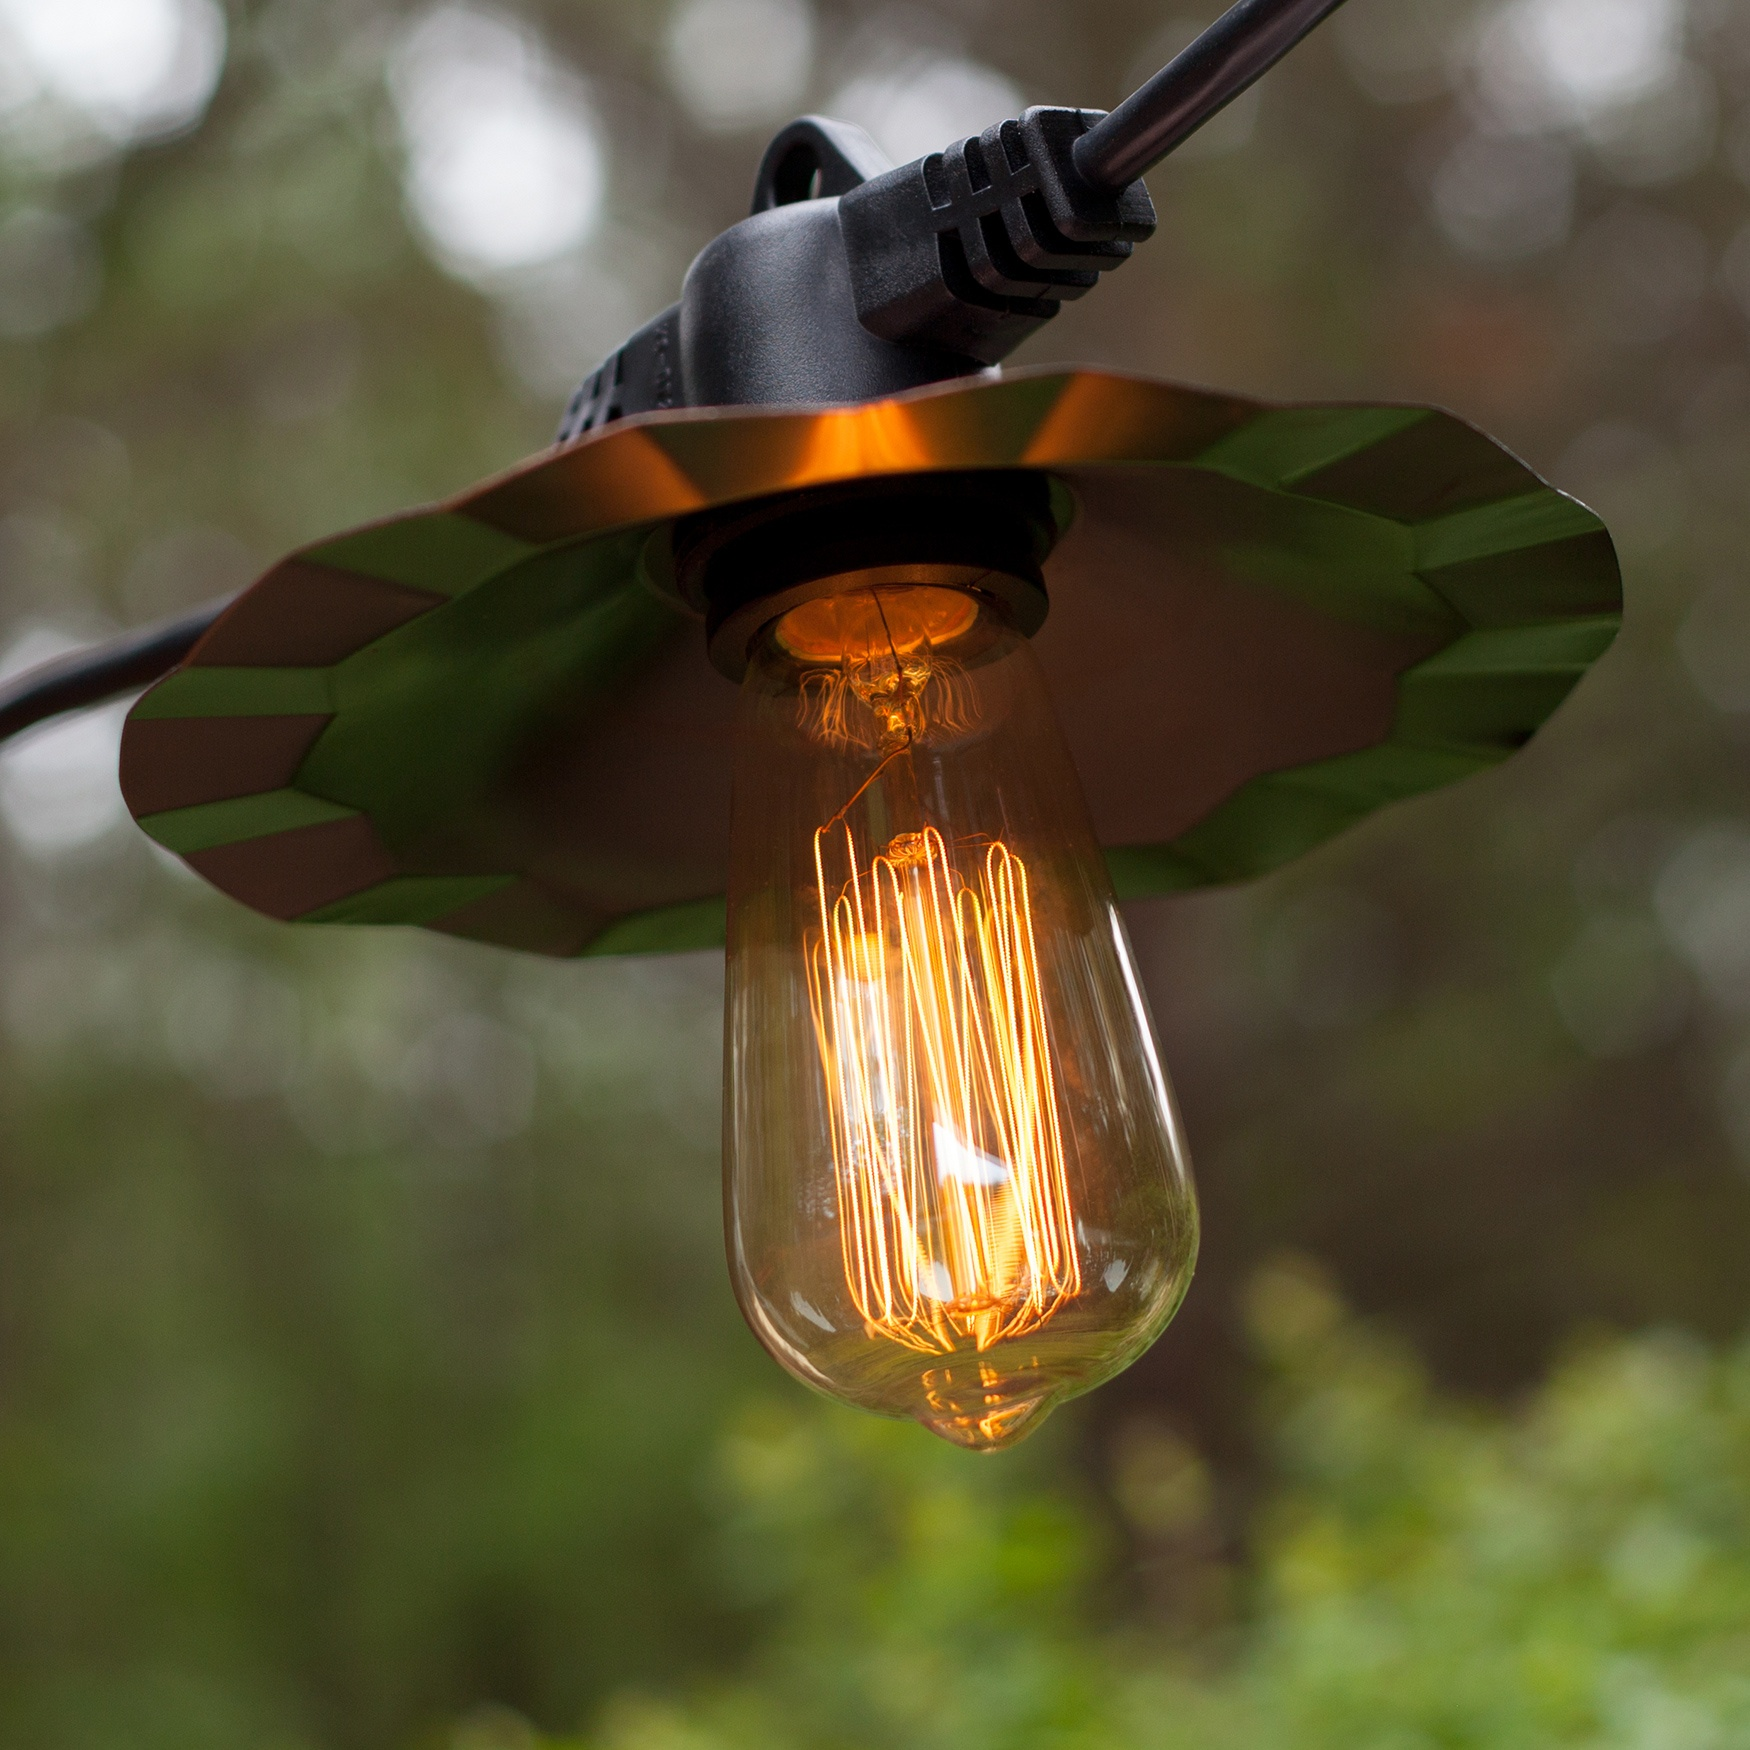 Ordinaire 35u0027 Patio String With Copper Shades And Vintage Outdoor Patio Lights